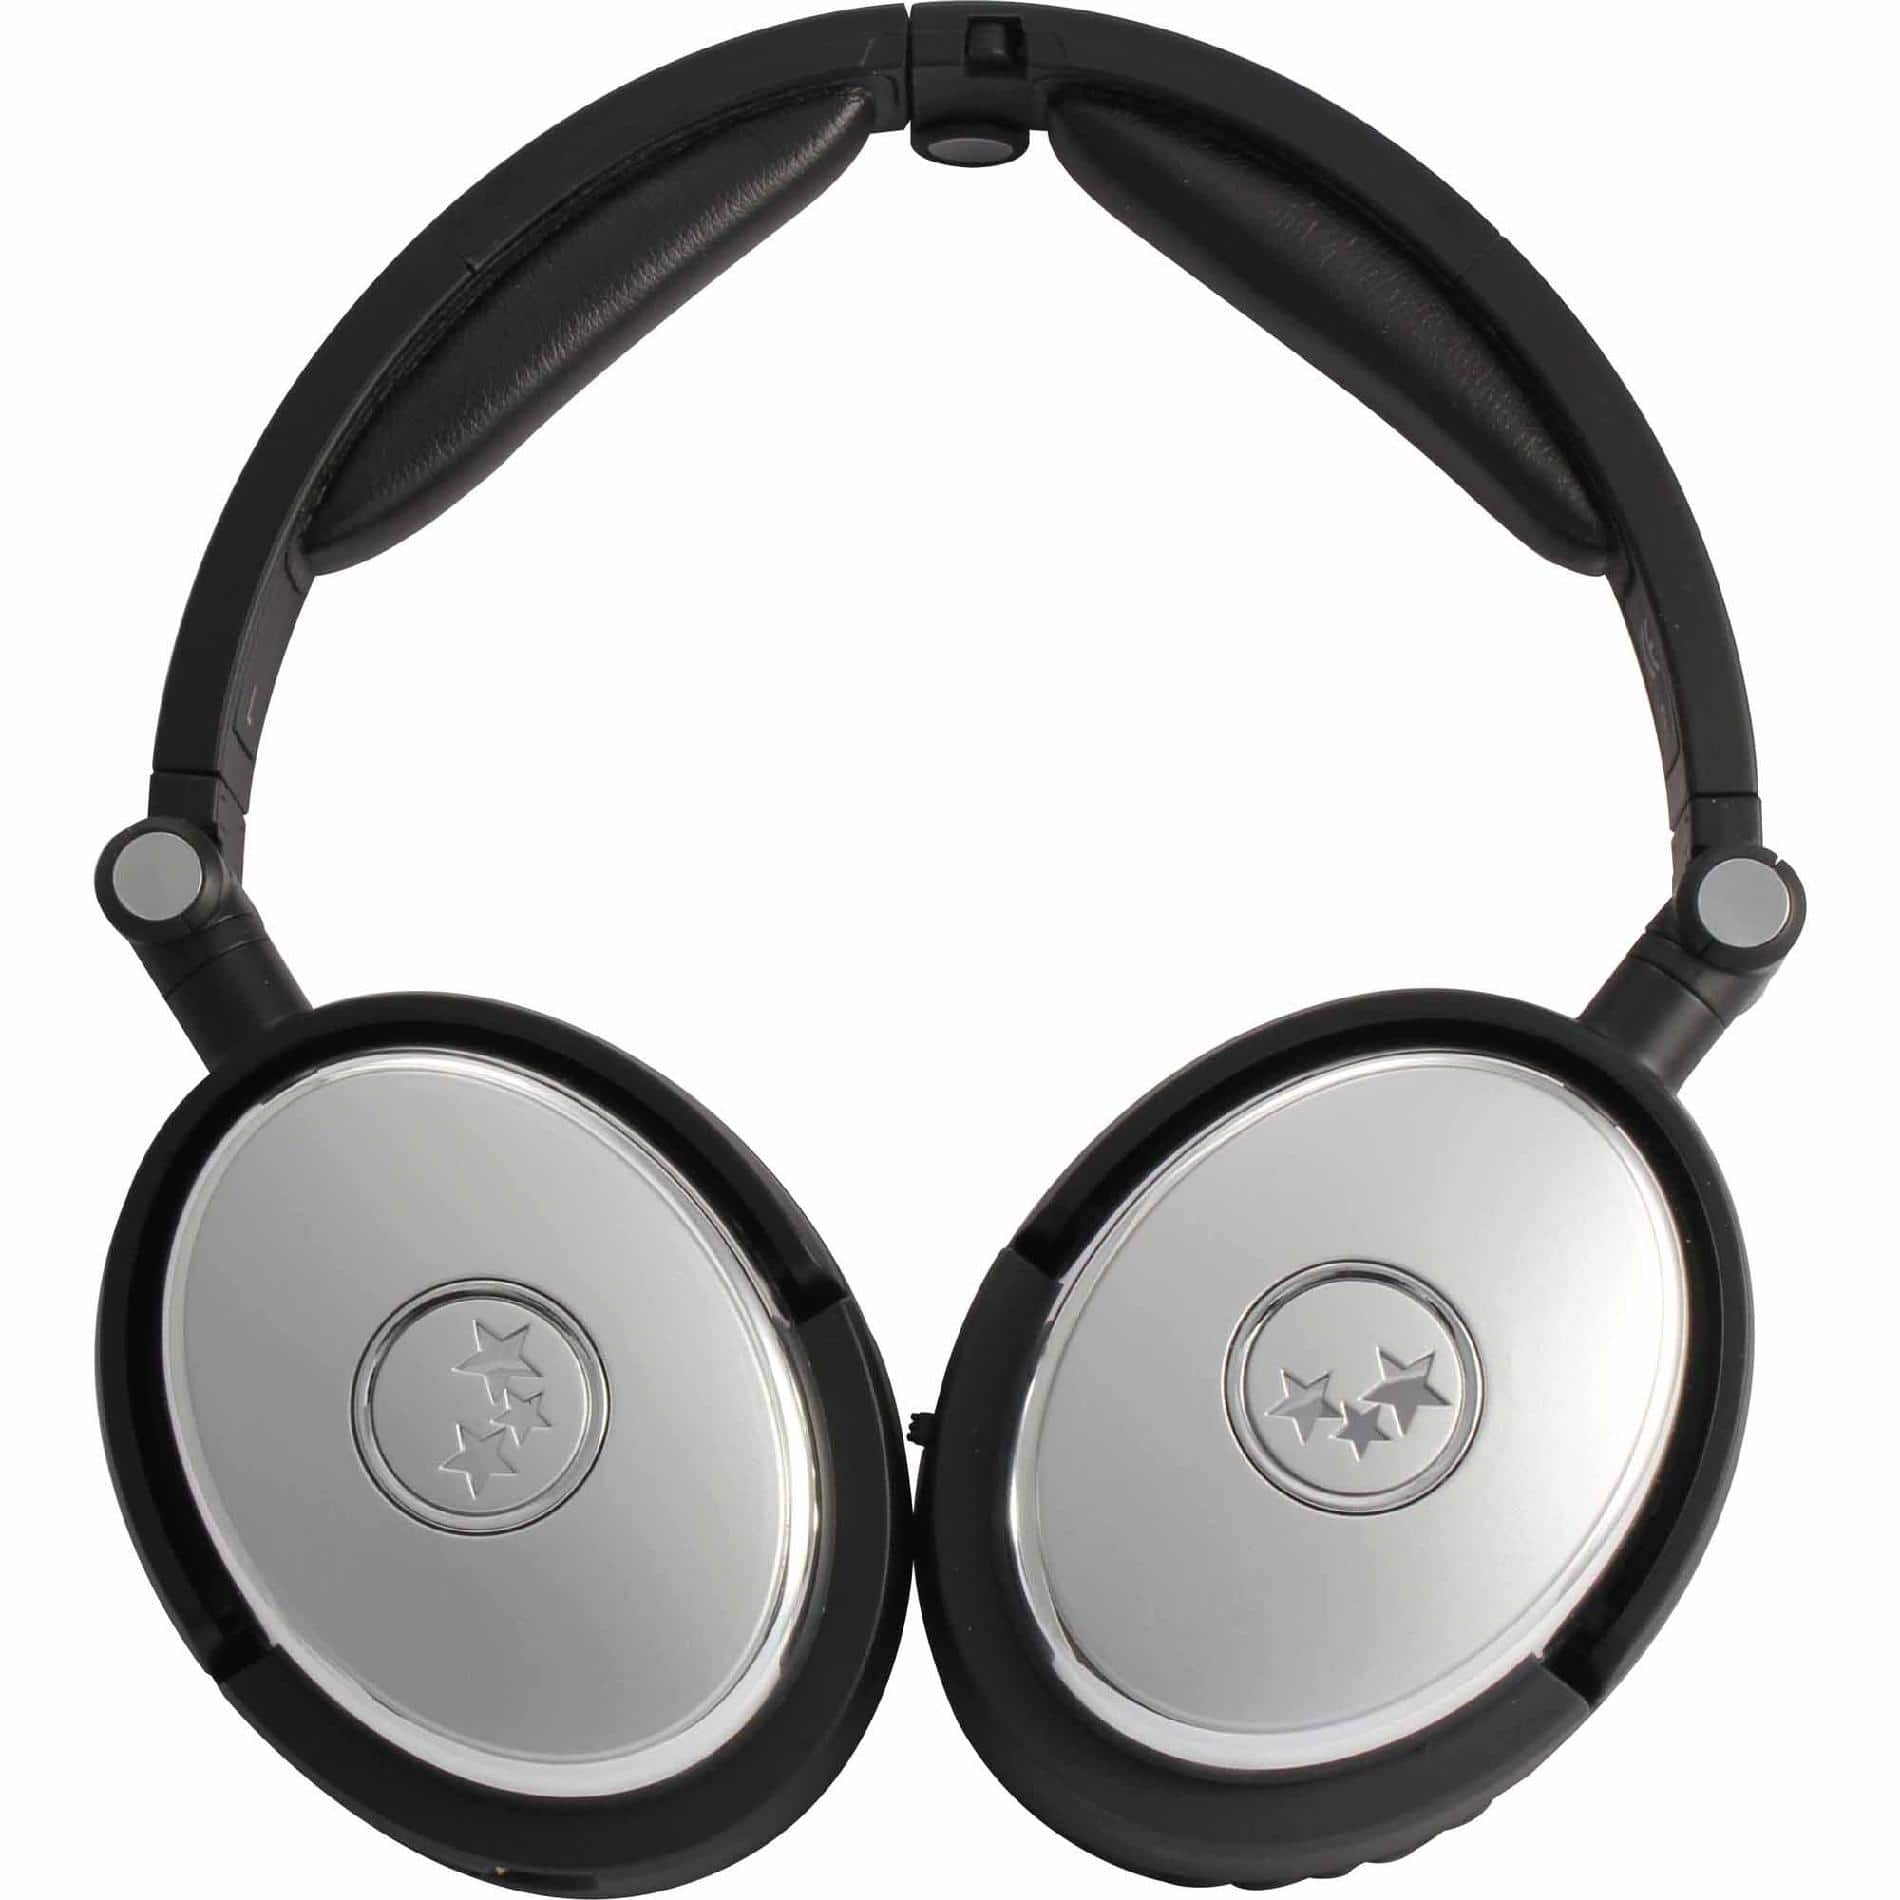 Able Planet True Fidelity® Around-the-Ear Active Noise-Canceling Headphones - Silver + upto $99 SYW points (No Roll) - $99 and More Options @ Sears